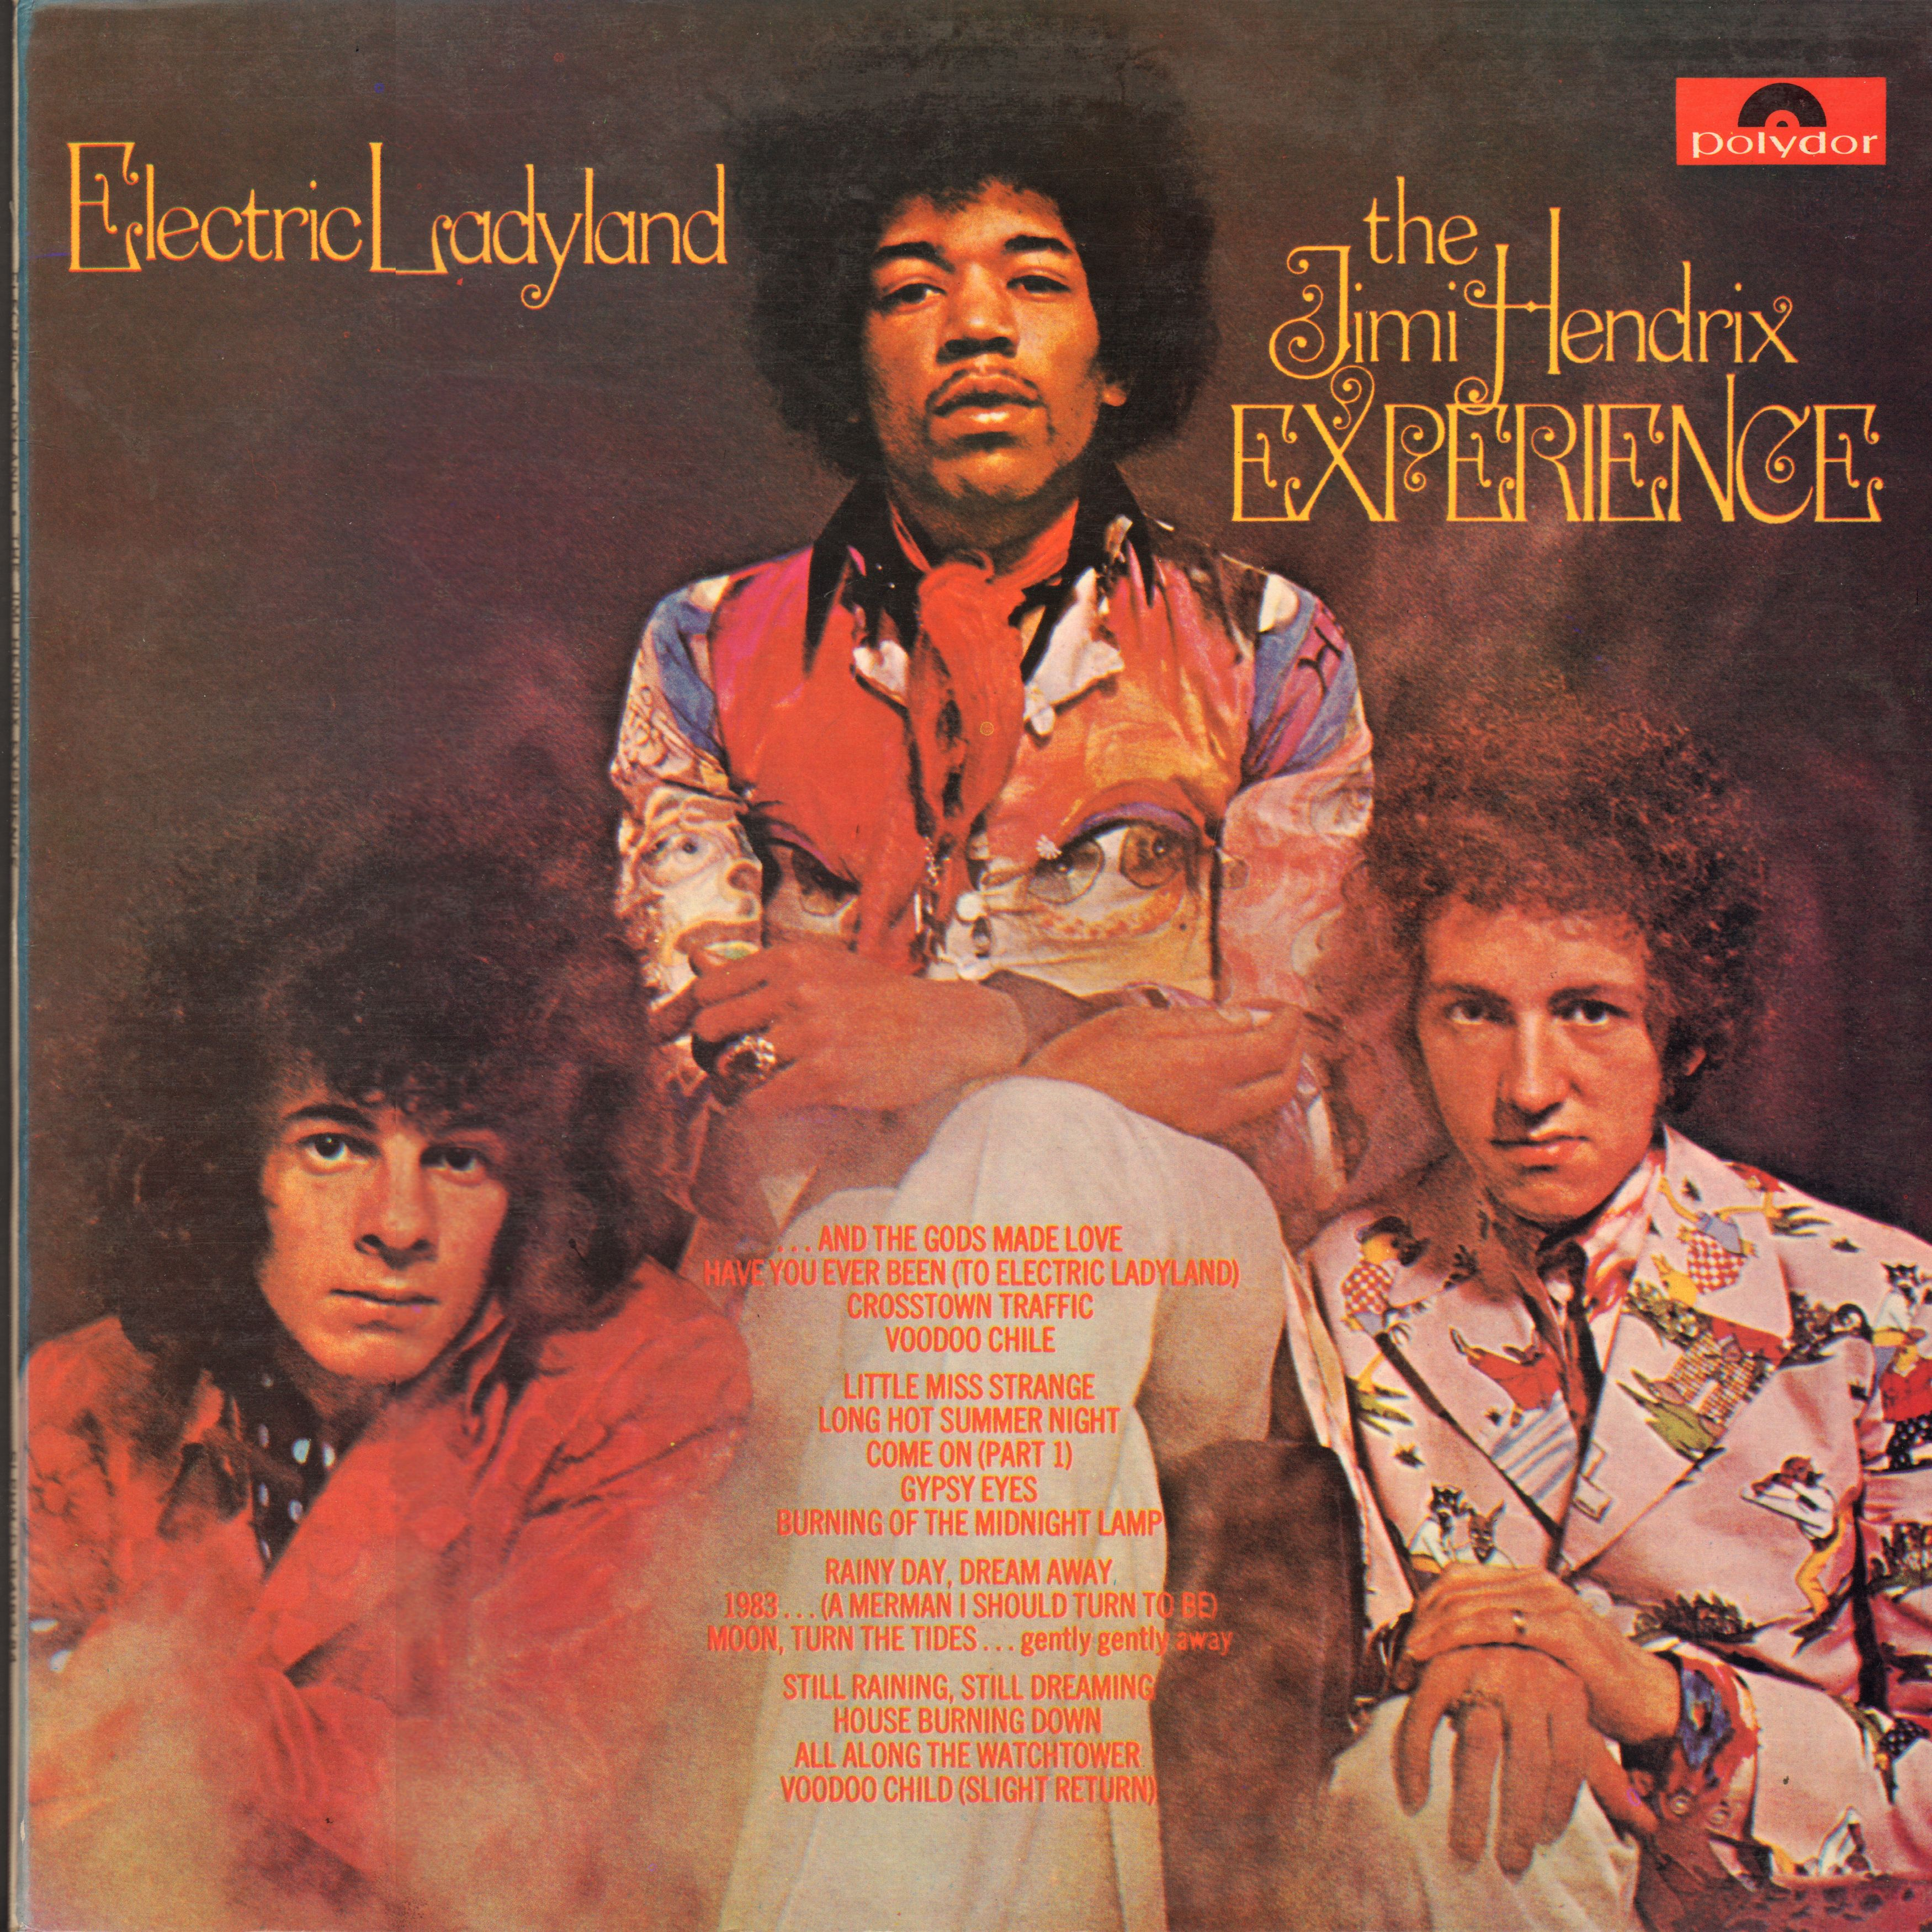 Discographie : Rééditions & Compilations Jimi%20Hendrix%20-%20Electric%20Ladyland%20-%20Polydor%20SLPHM-D-184183-84%20-%20Front%20Italy